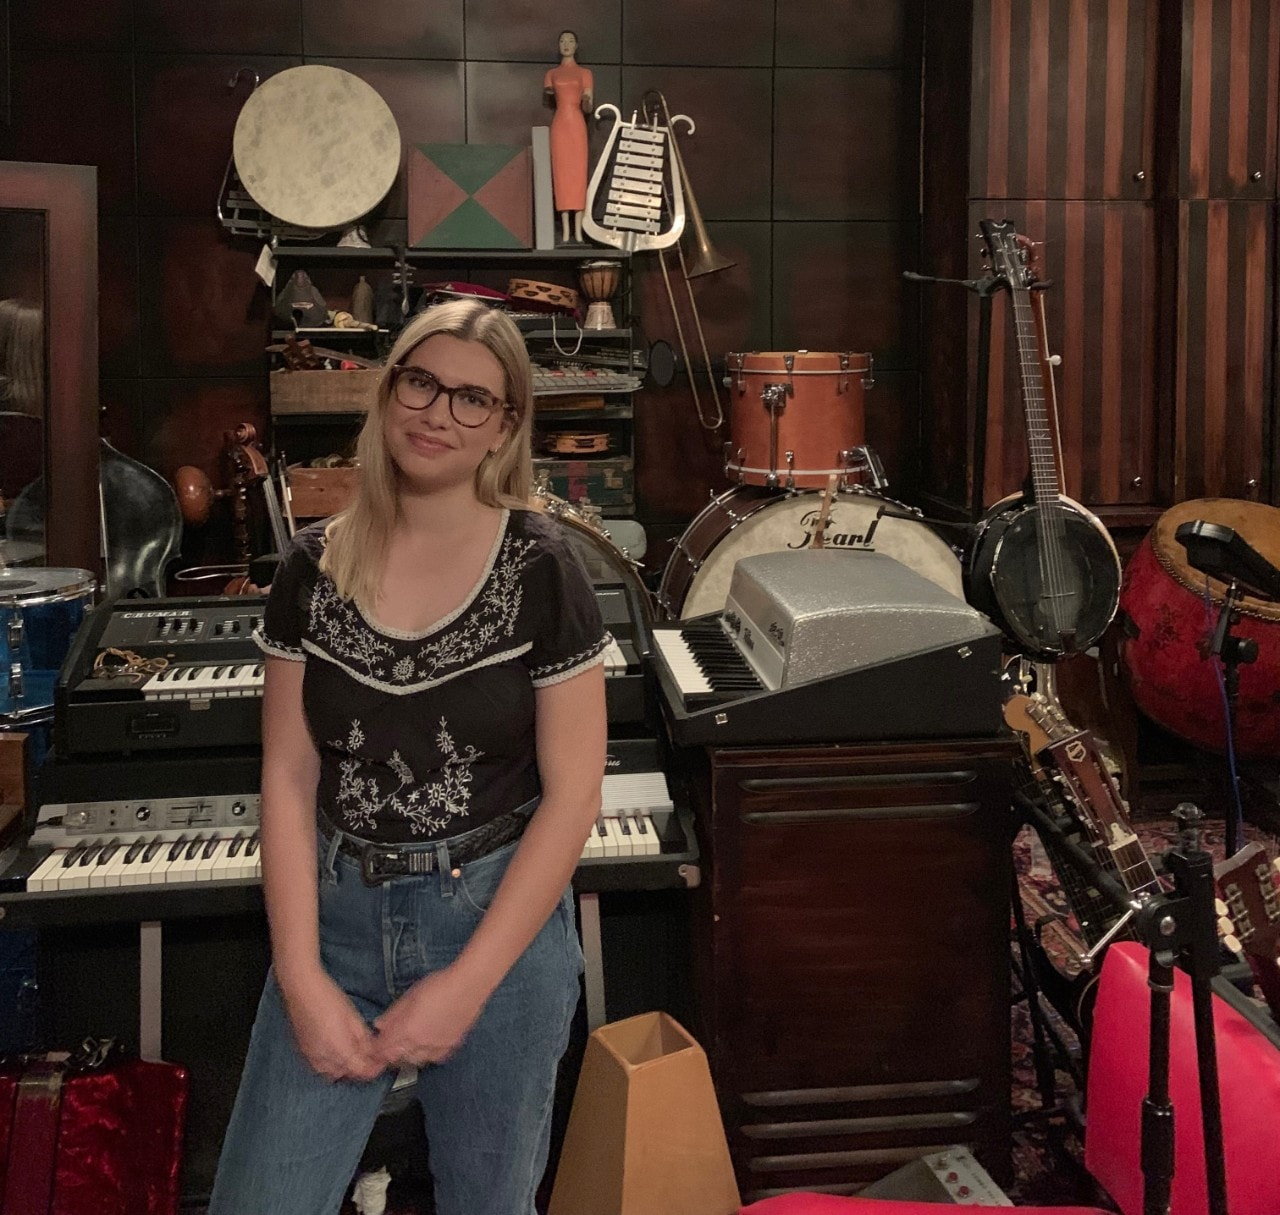 Chloe Sinclair in the Matter Music studio surrounded by musical instruments and memorabilia